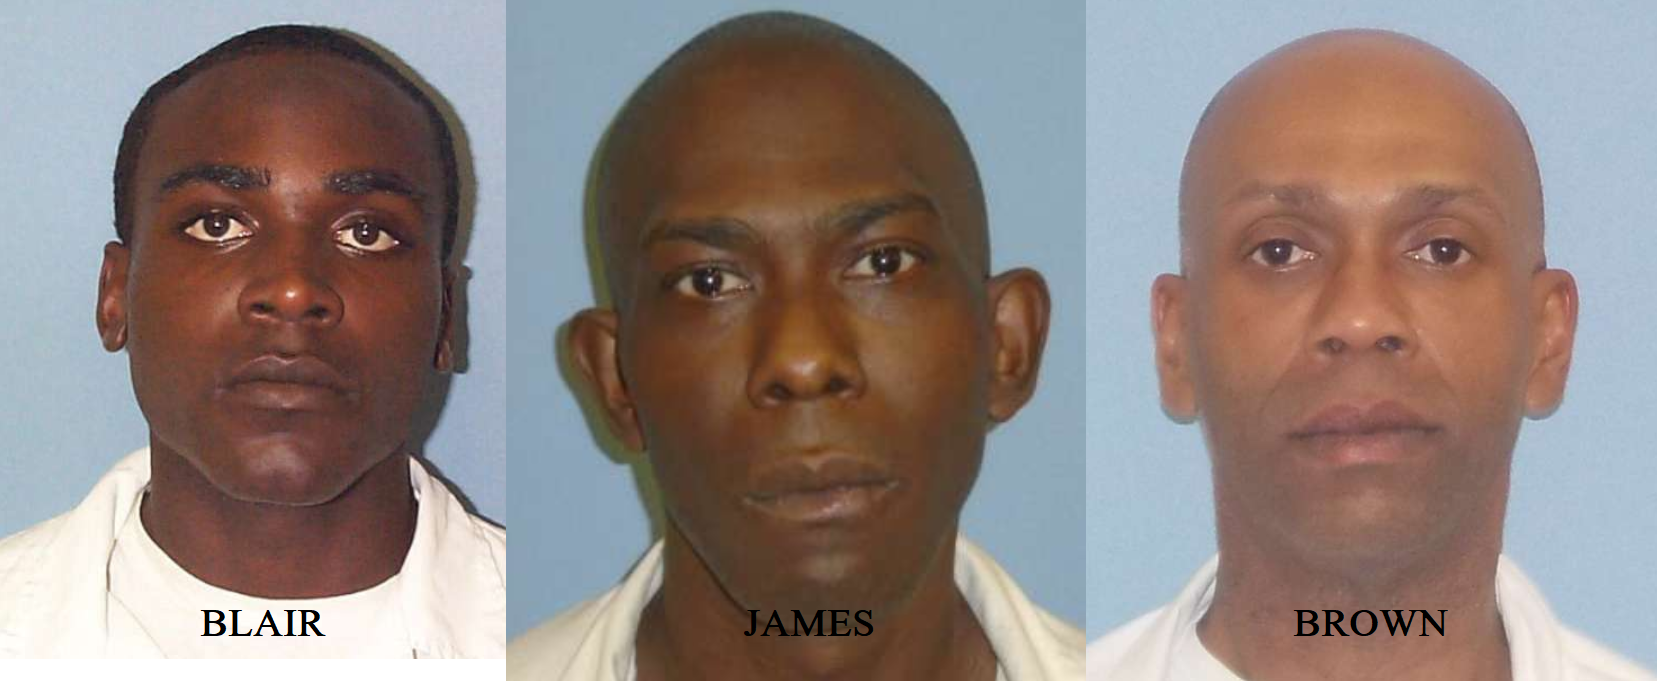 Parole denied for 3 prisoners whose crimes were committed in Jefferson County